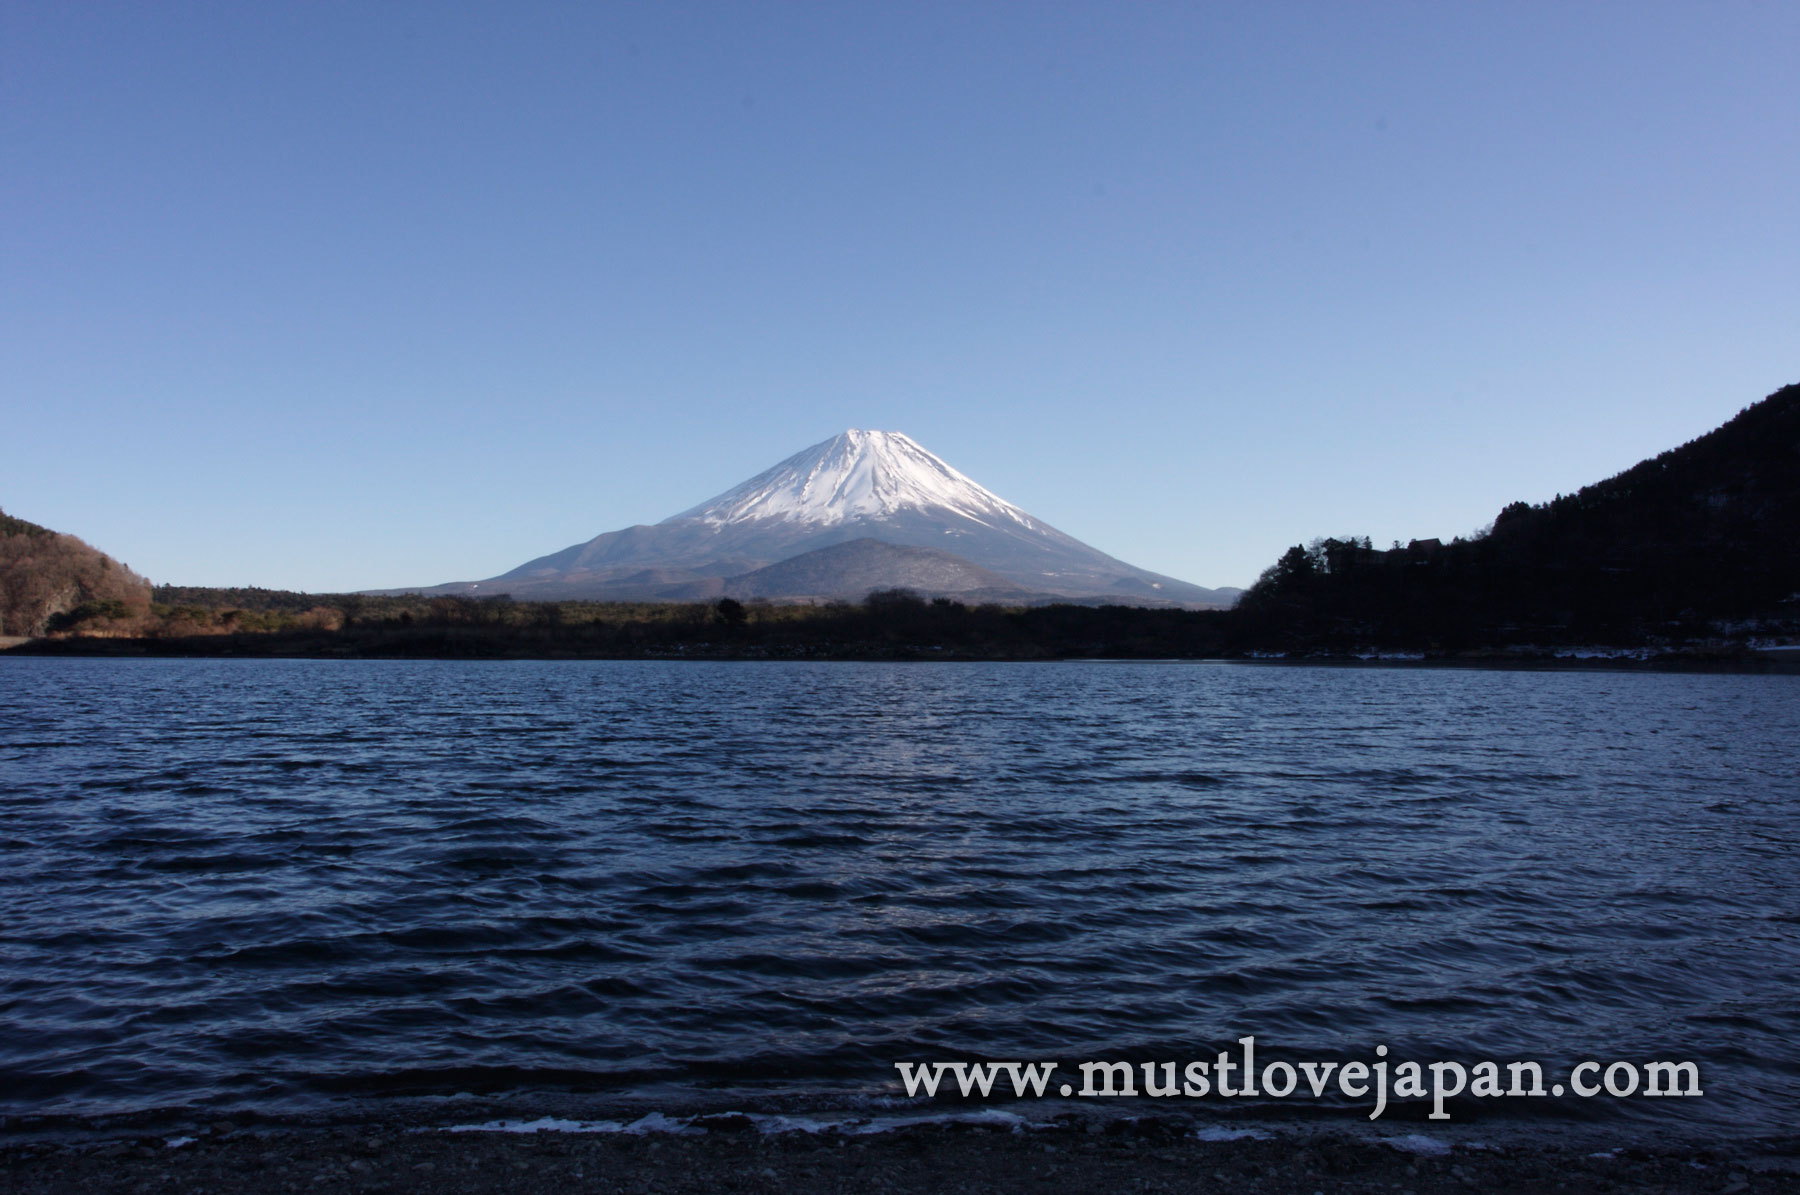 Lake Shoji Summarized | MustLoveJapan Video Travel Guide